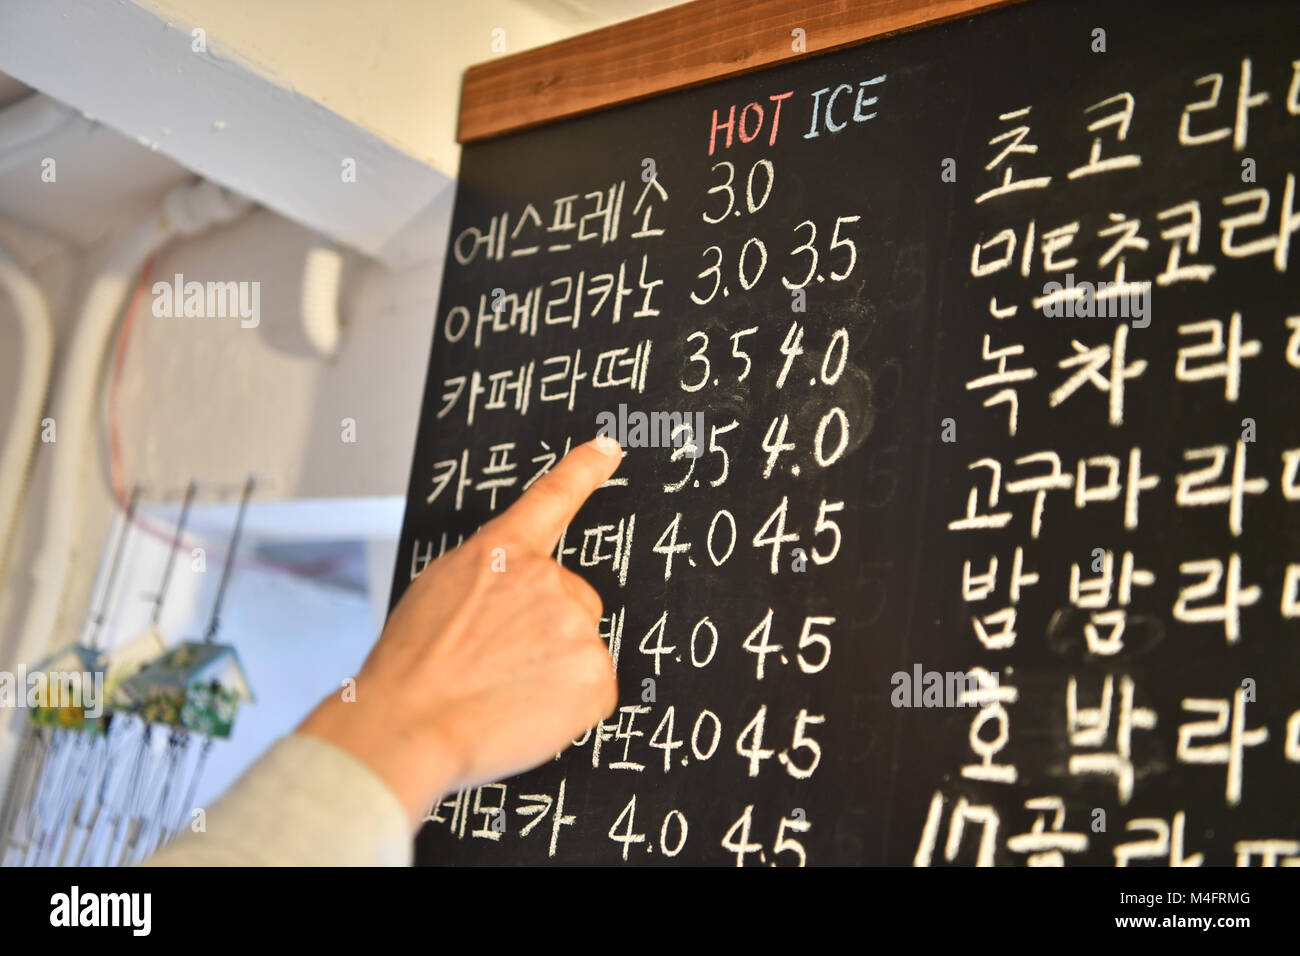 Gangneung, South Korea. 16th Feb, 2018. A finger pointing at the price for a white coffee on a price baord in Korean - Stock Image